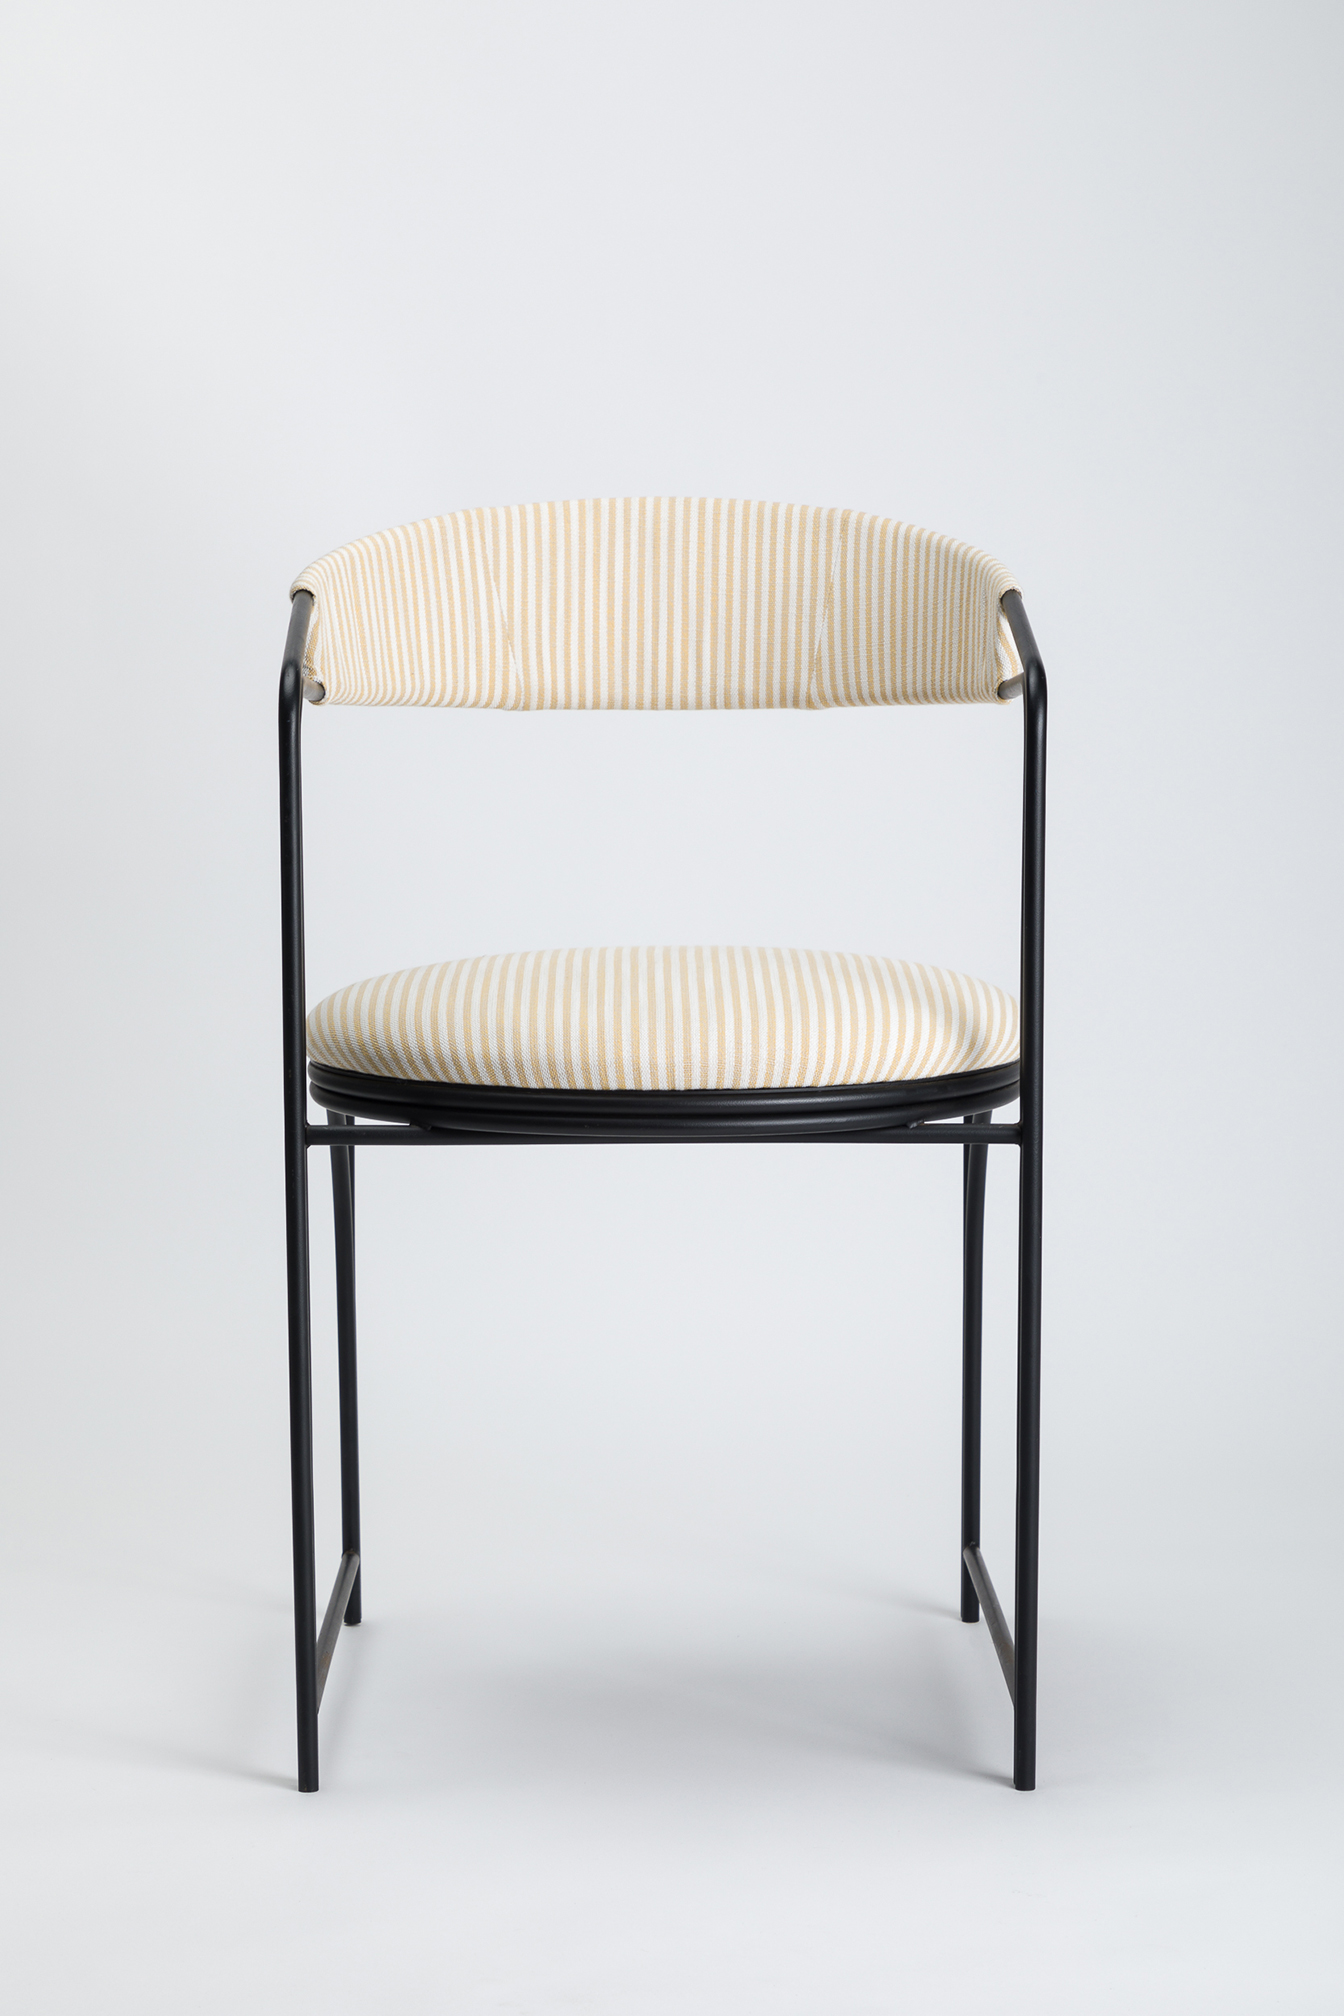 LAUN - Bacall Chair Yellow 002_photo credit Little League Studio.jpg